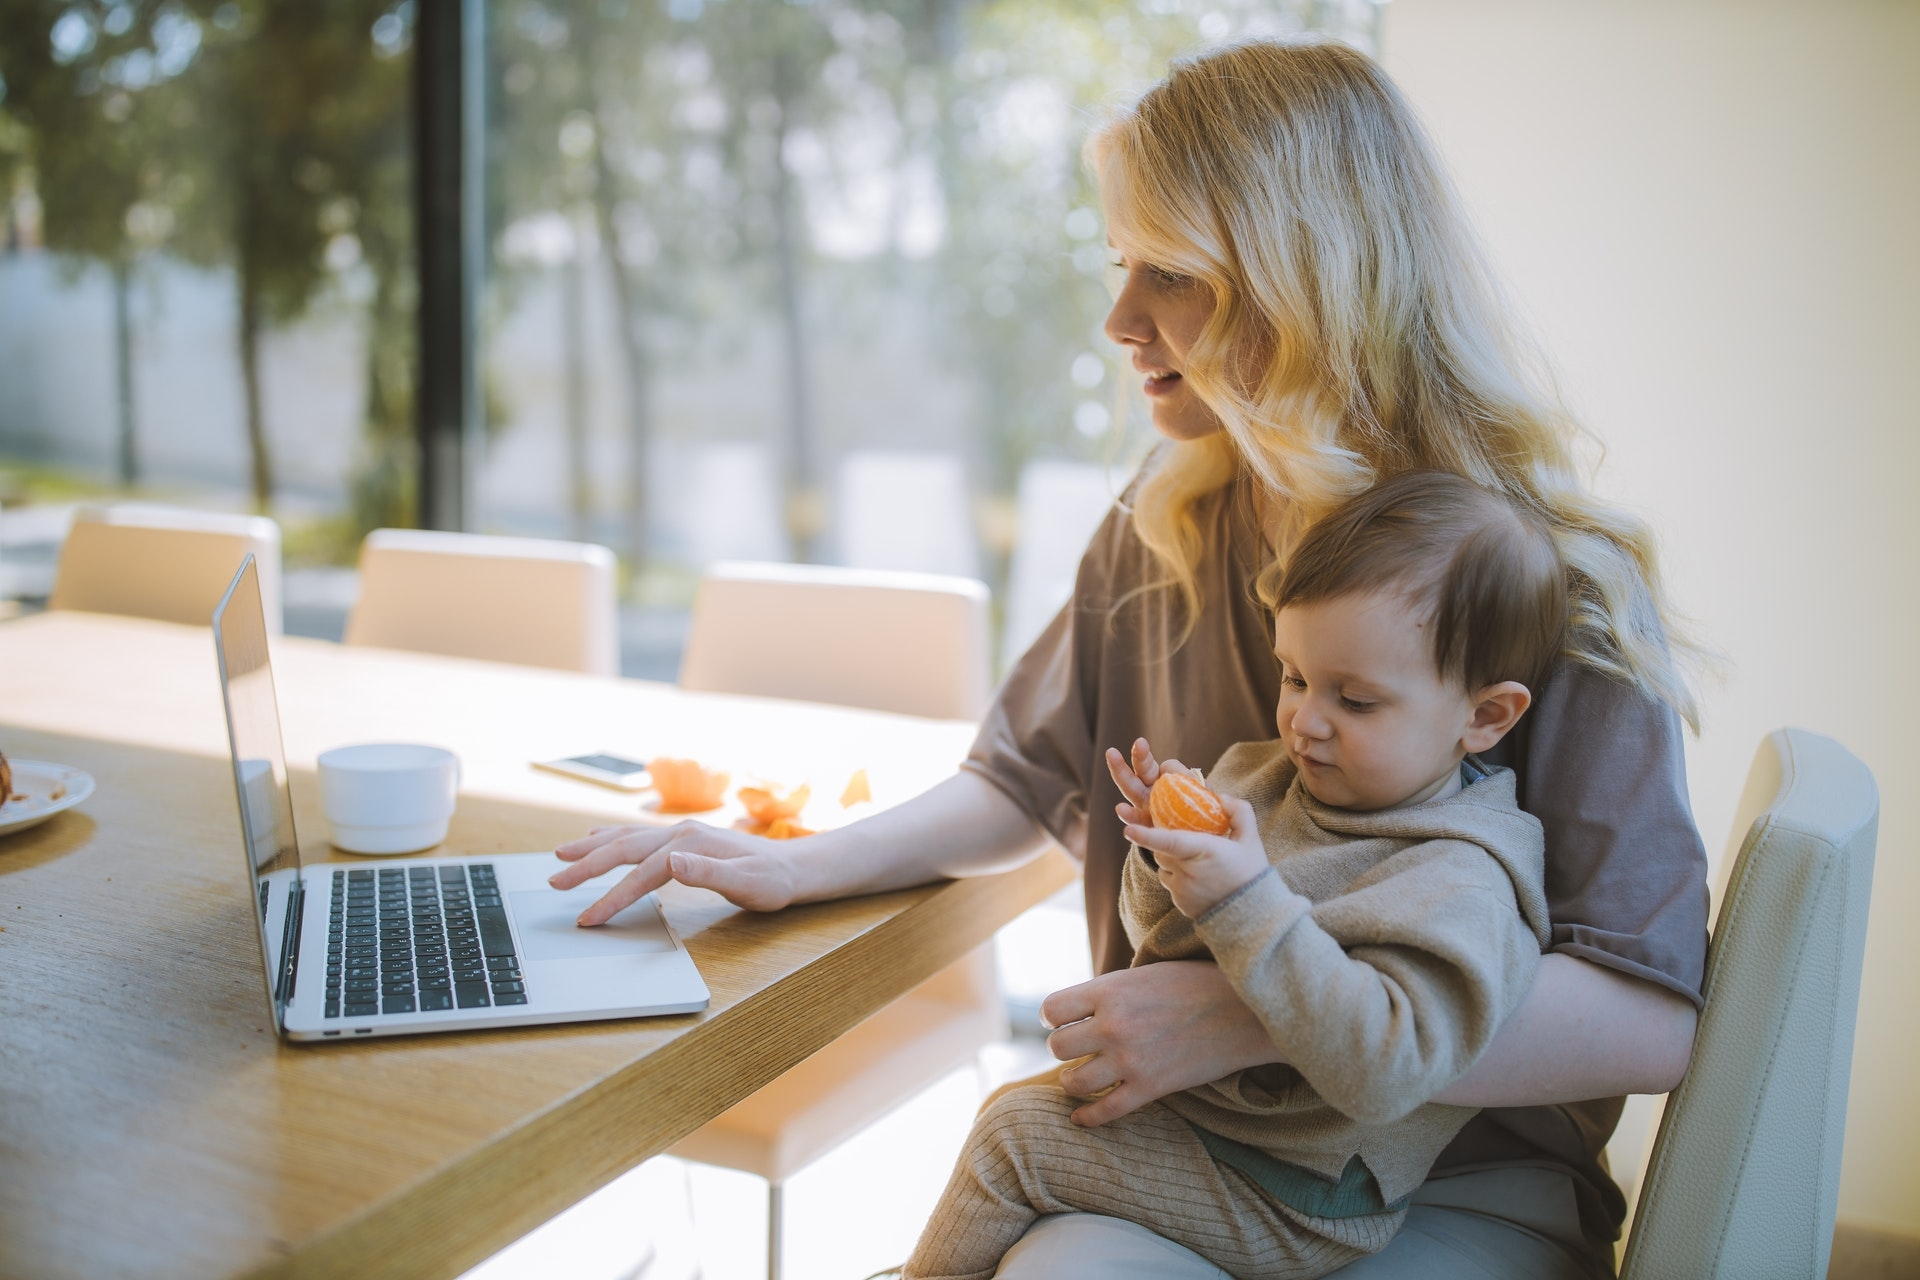 Why Aren't We Talking More About Expectations and the Current Remote Working Situation?